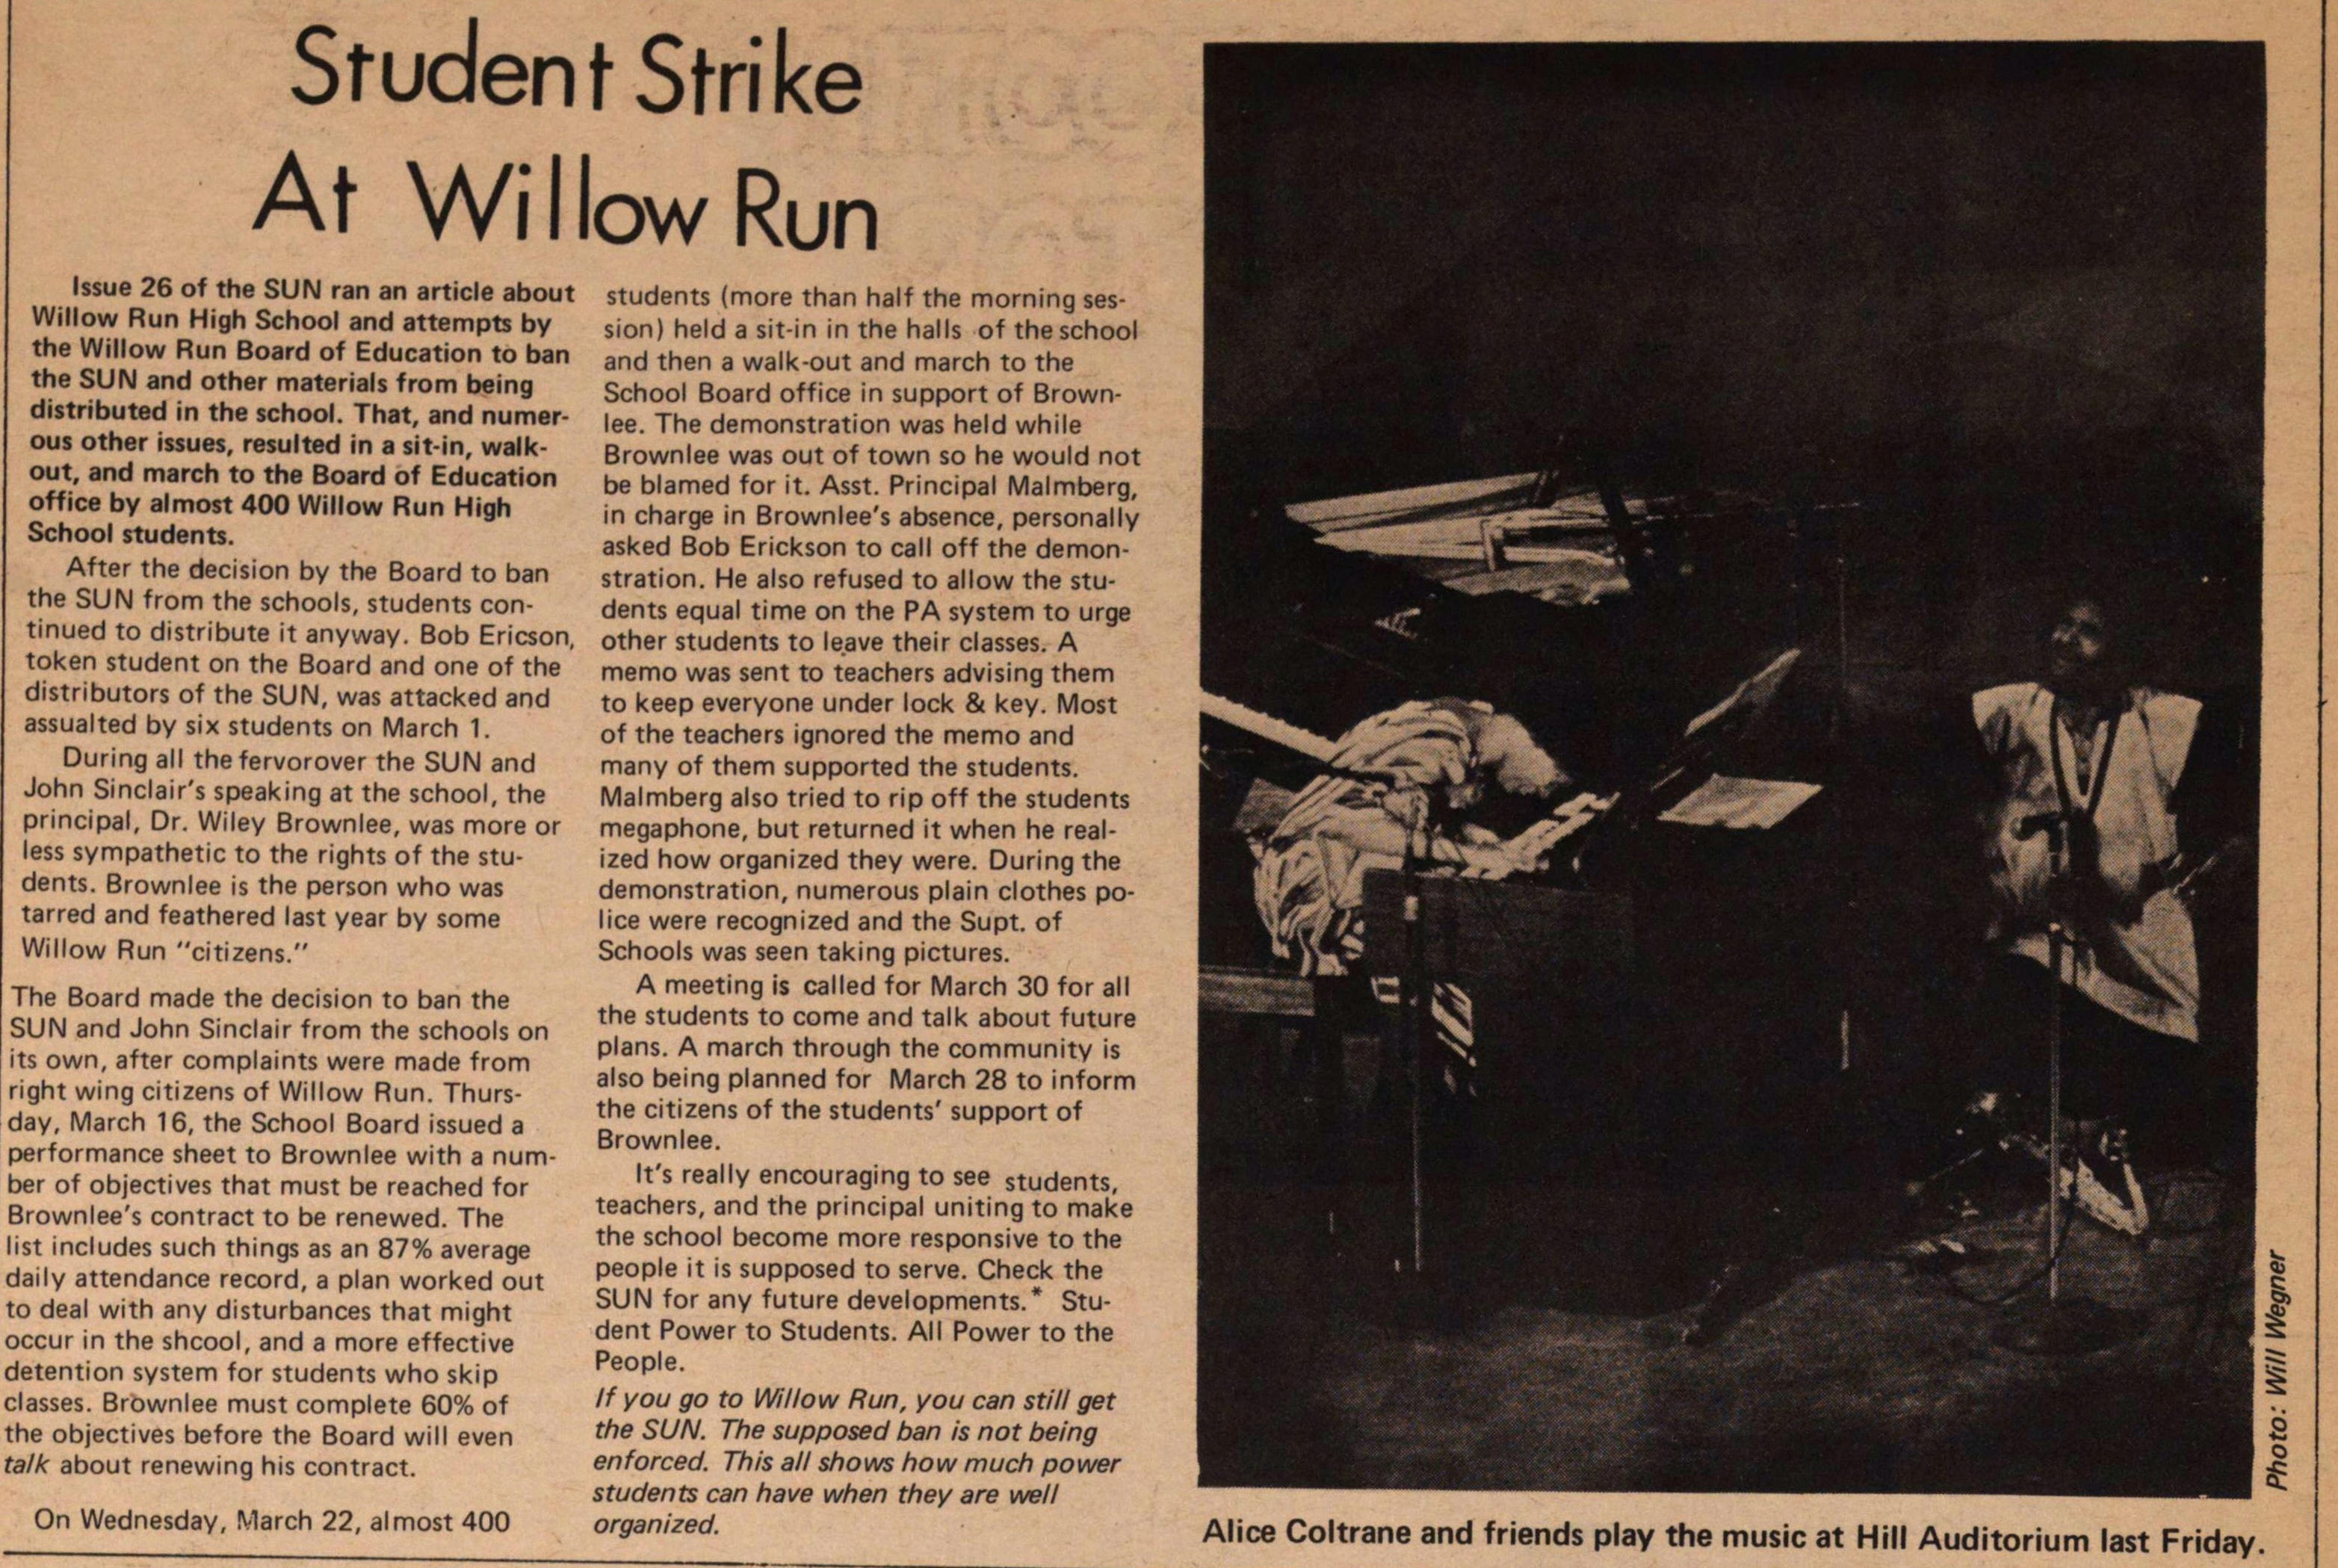 Student Strike At Willow Run image